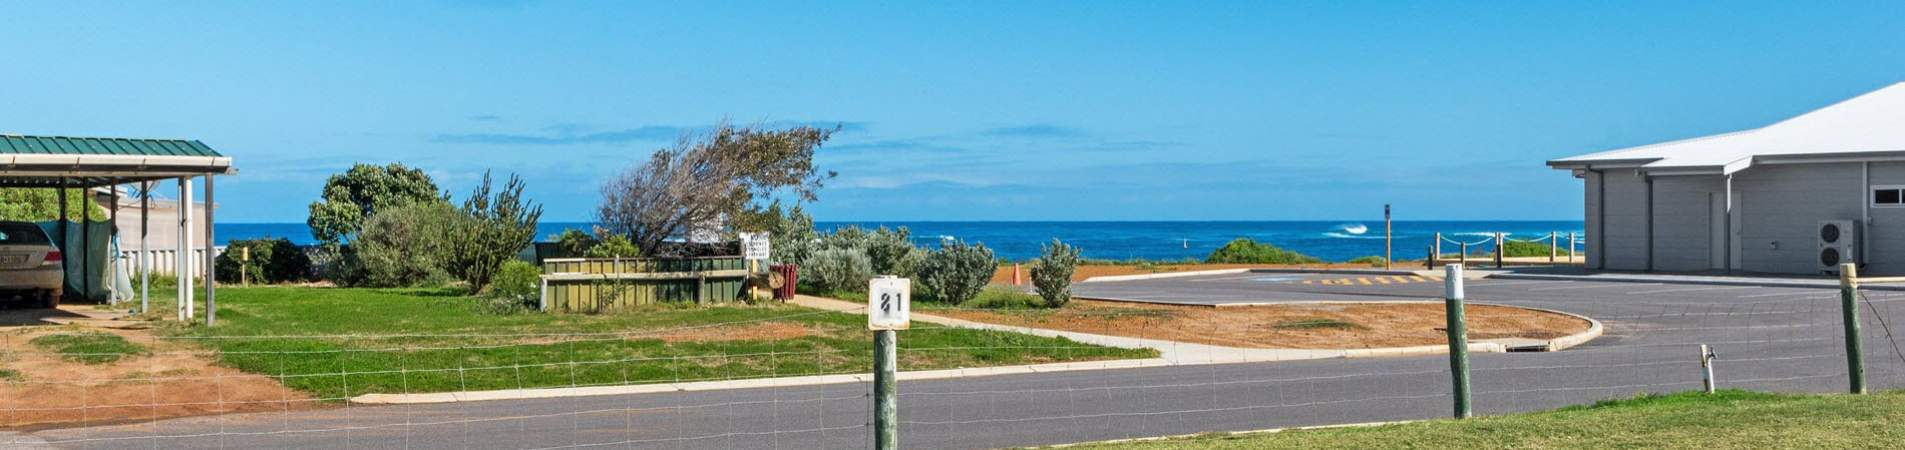 horrocks beach caravan park - banner 3